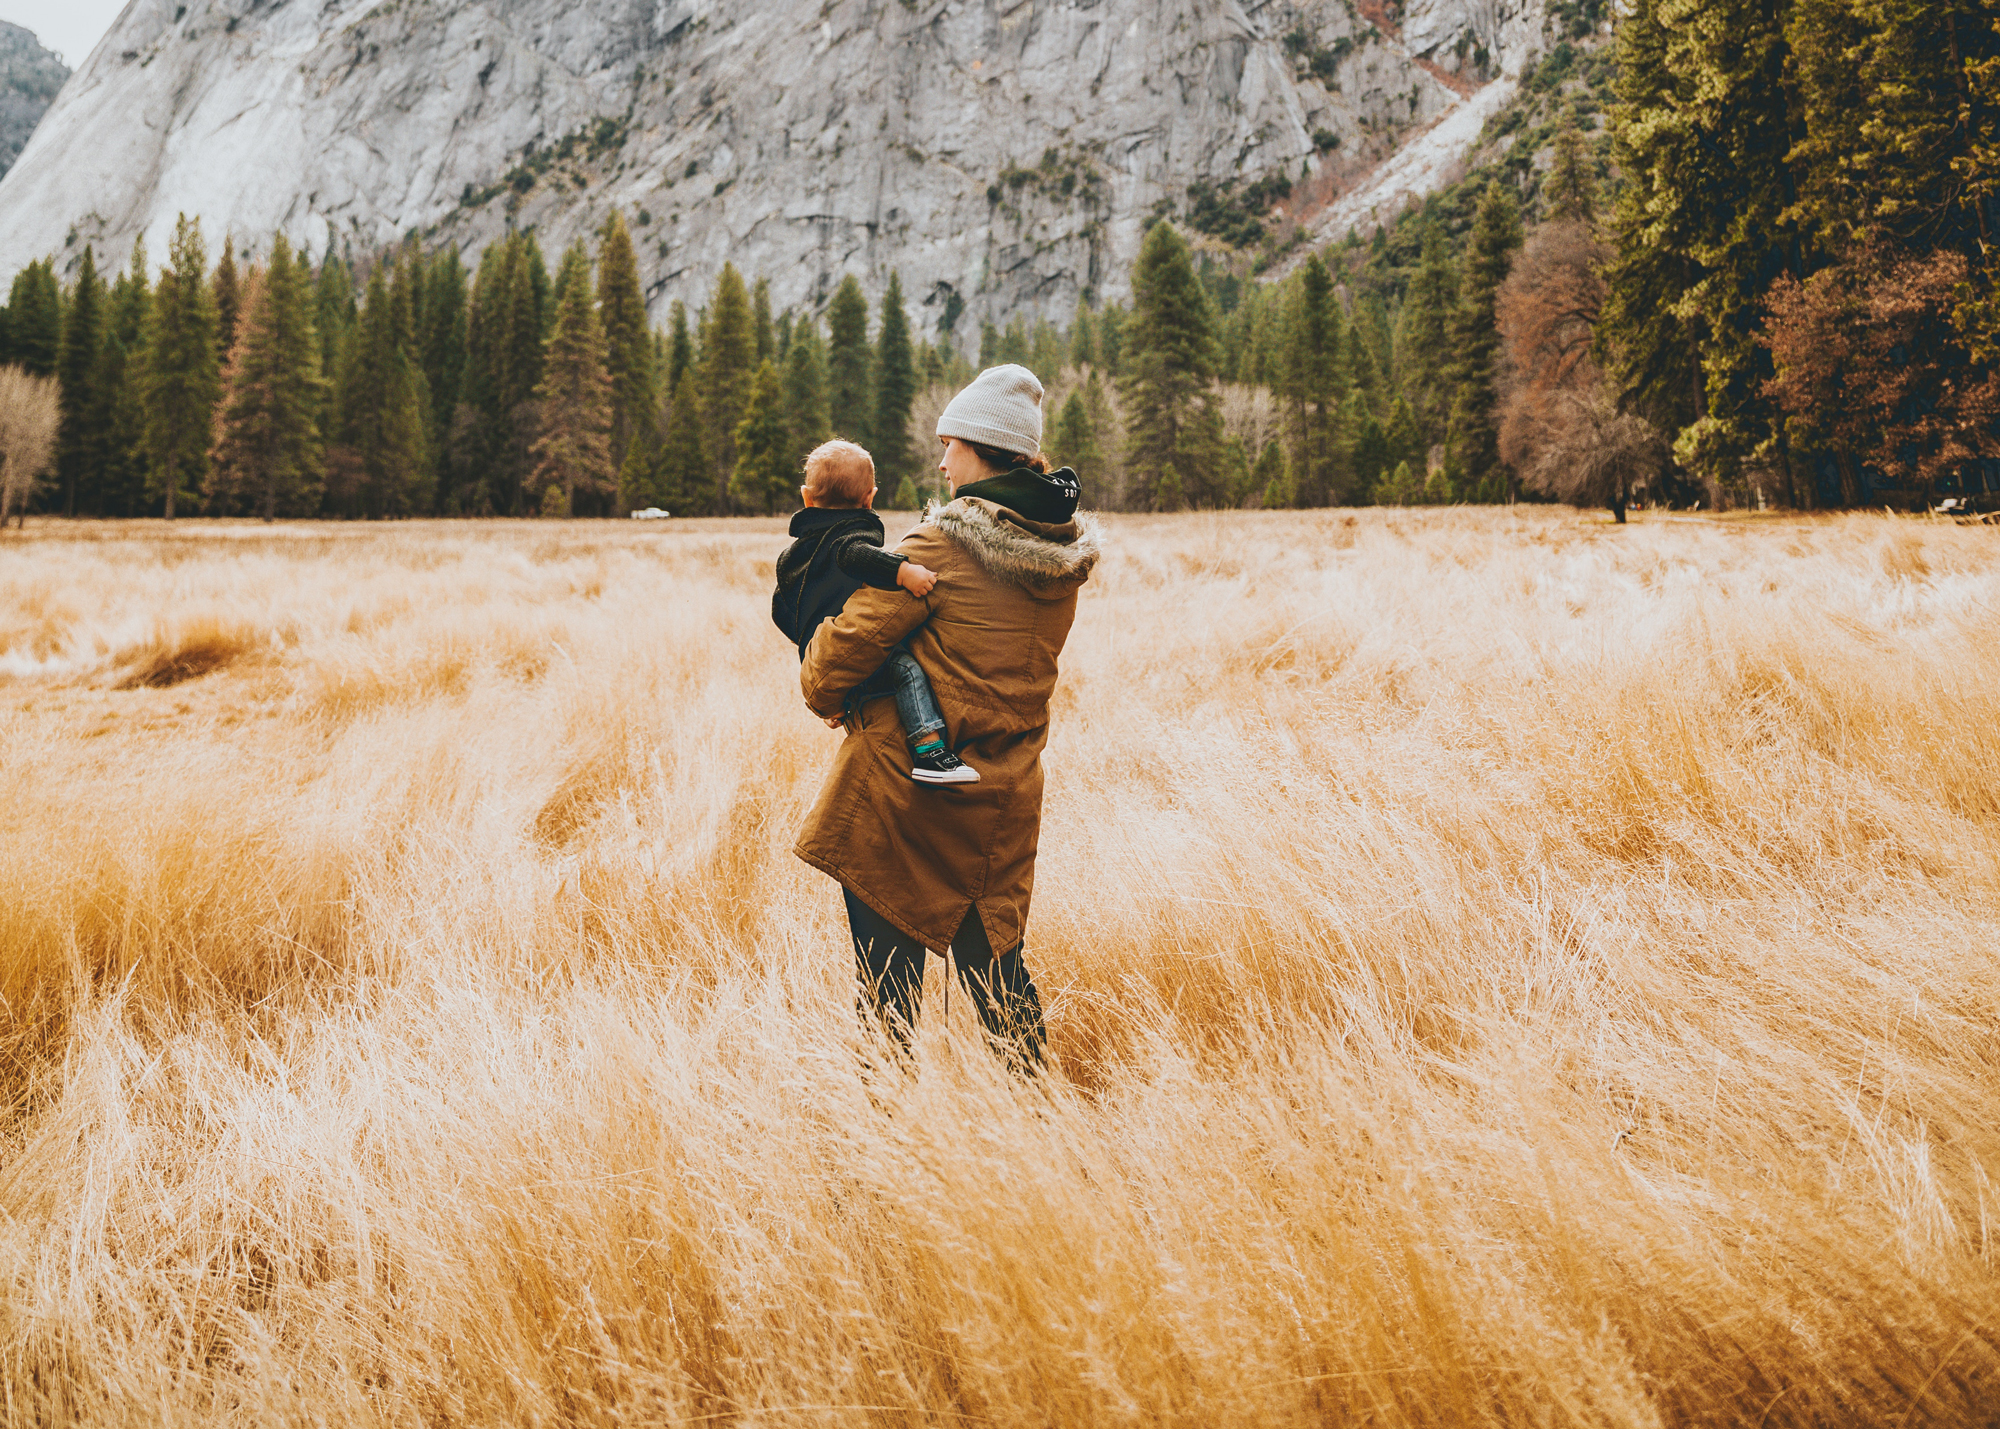 a counselor's perspective on parenting